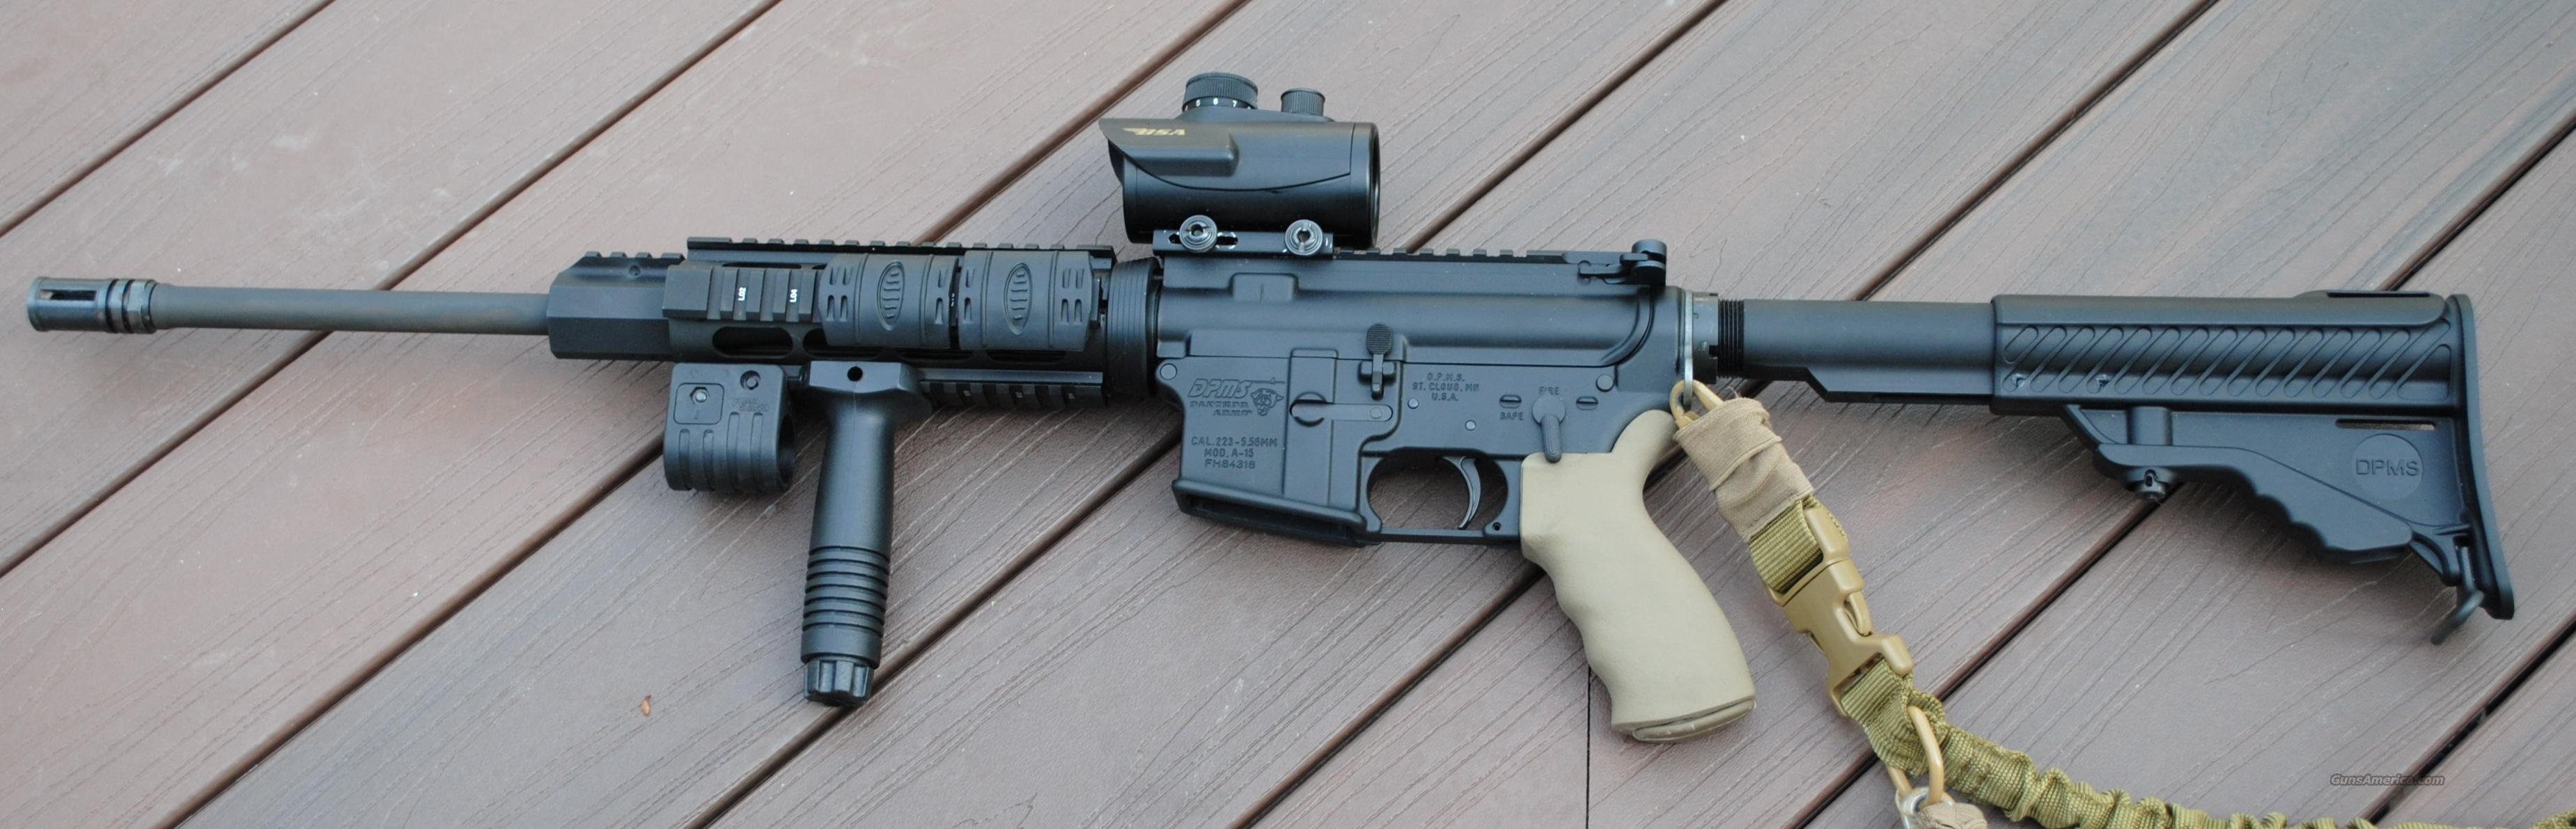 AR - 15 with accessories on rifle  Guns > Rifles > AR-15 Rifles - Small Manufacturers > Complete Rifle